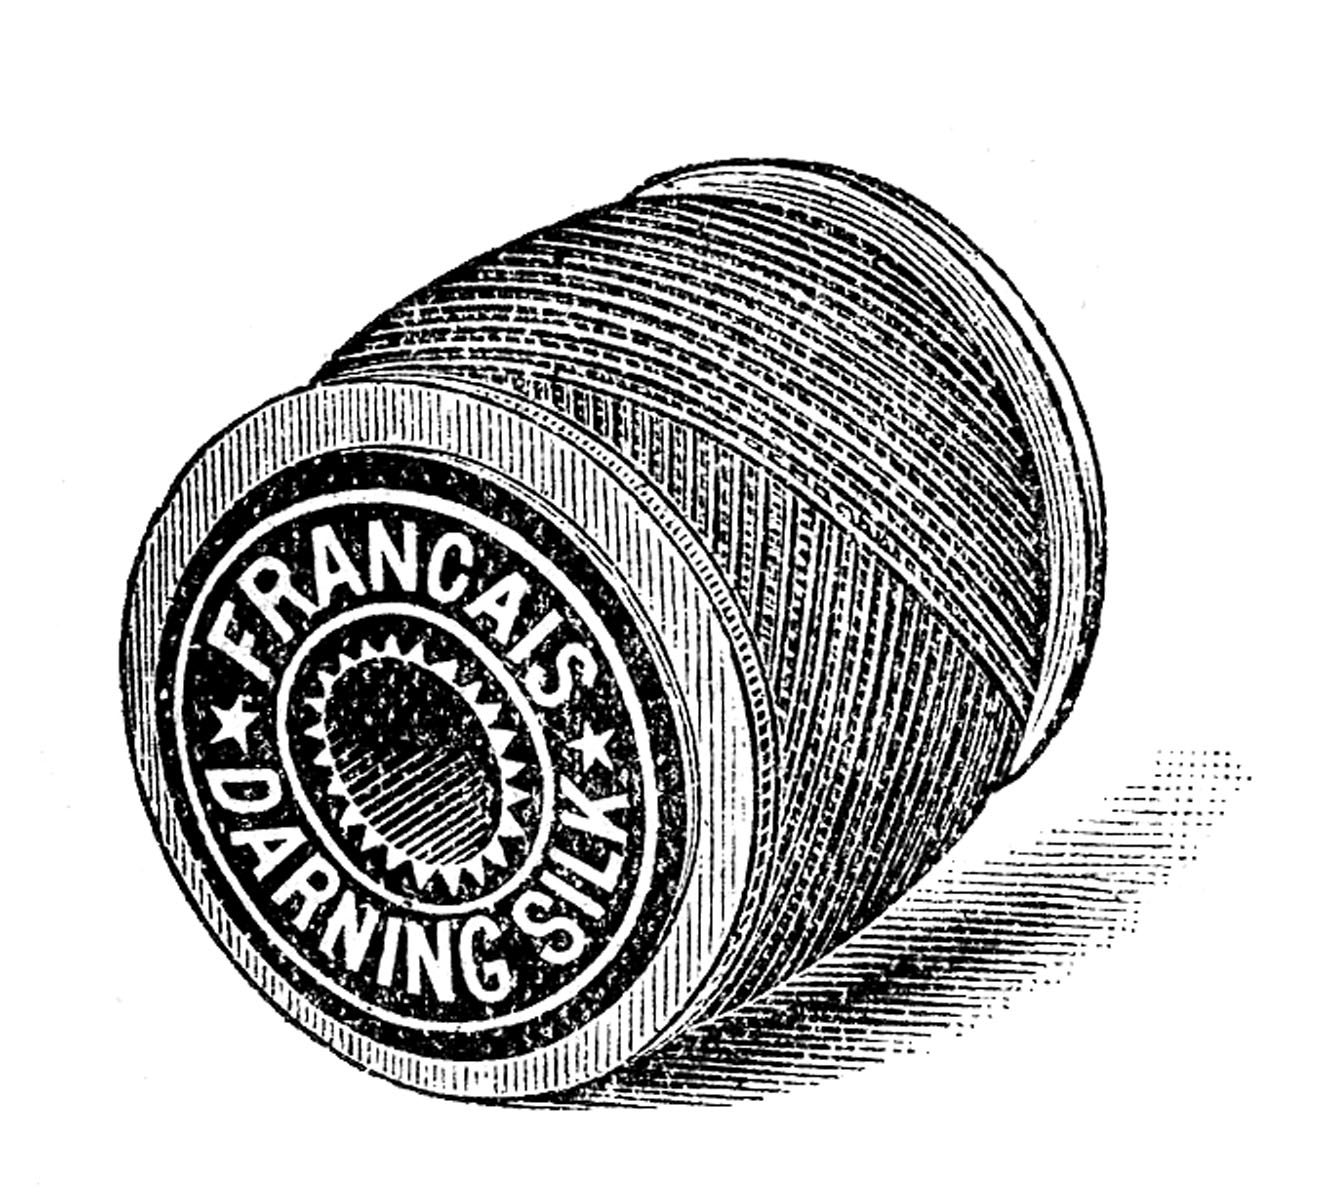 Vintage spool of thread clipart banner black and white stock Vintage Sewing Clip Art - Thread - Embroidery - The Graphics Fairy banner black and white stock